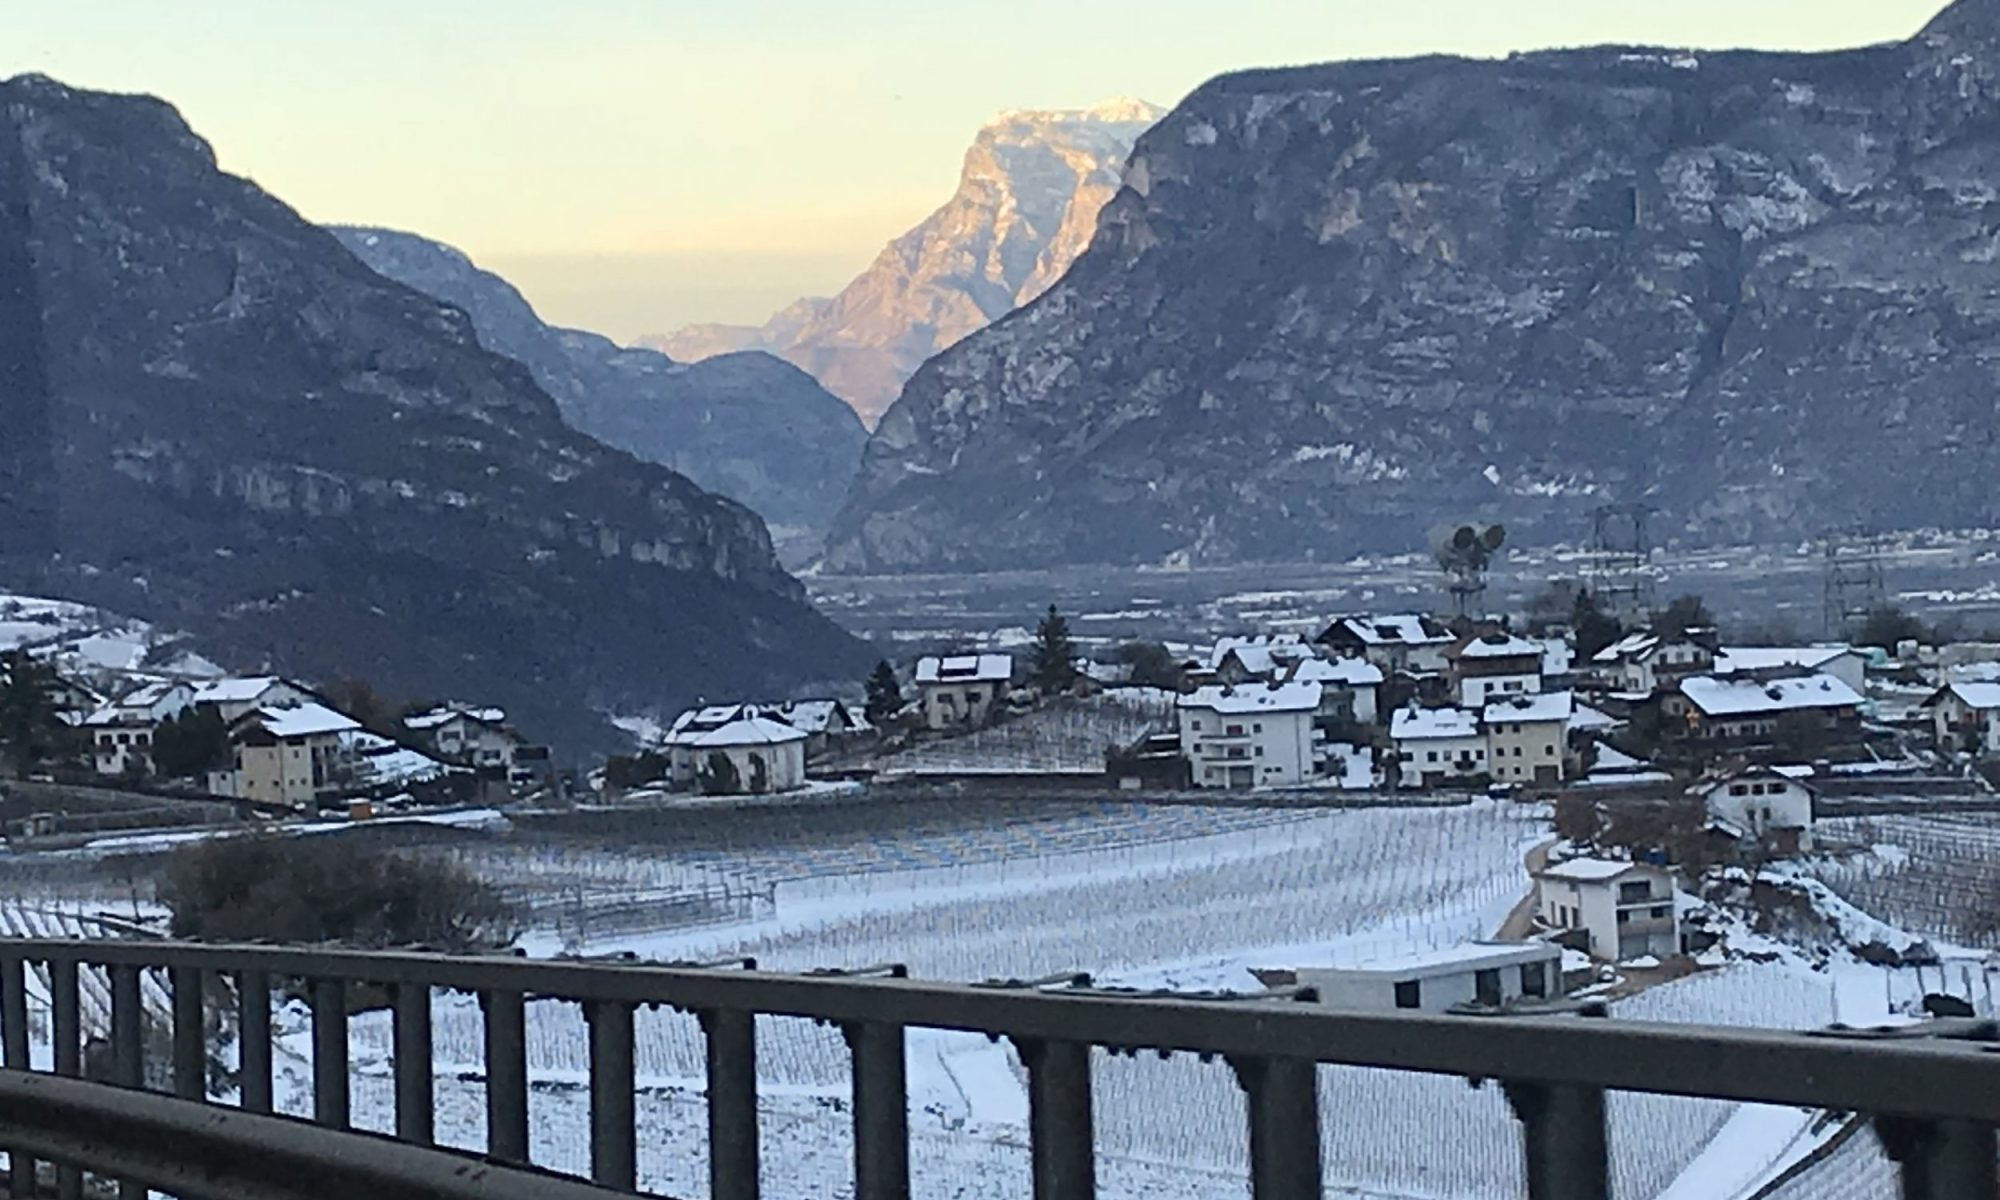 Coming from the winding roads of Val di Fiemme towards the Brennero route direction to Trento - Photo by The-Ski-Guru.